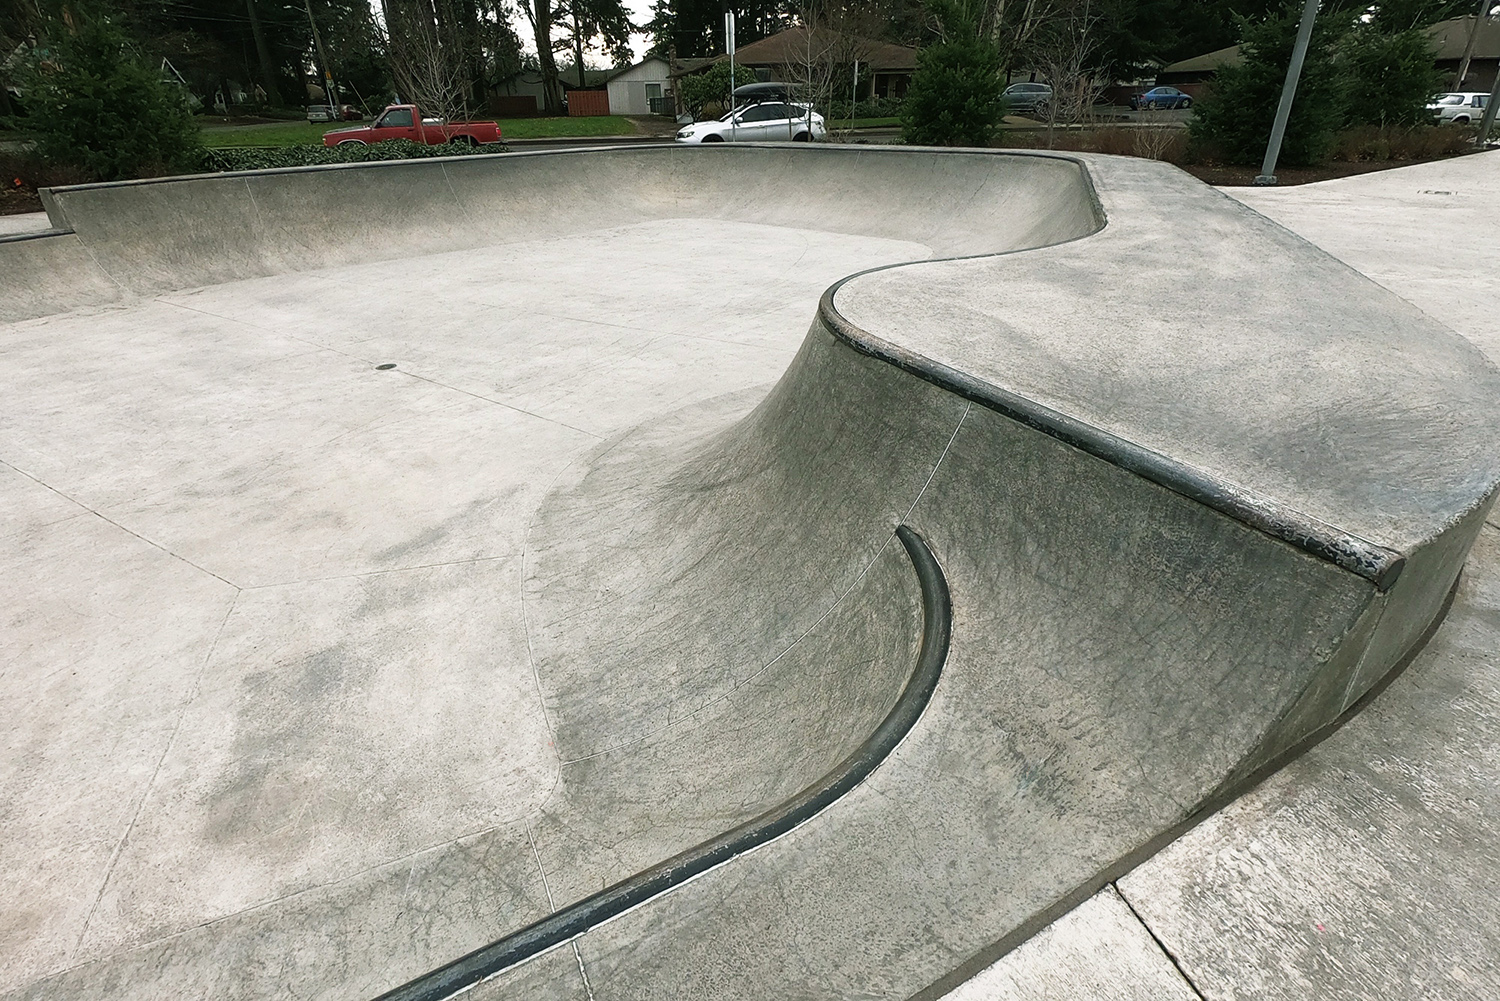 Hip section of the bowl at the Gateway Skate Spot